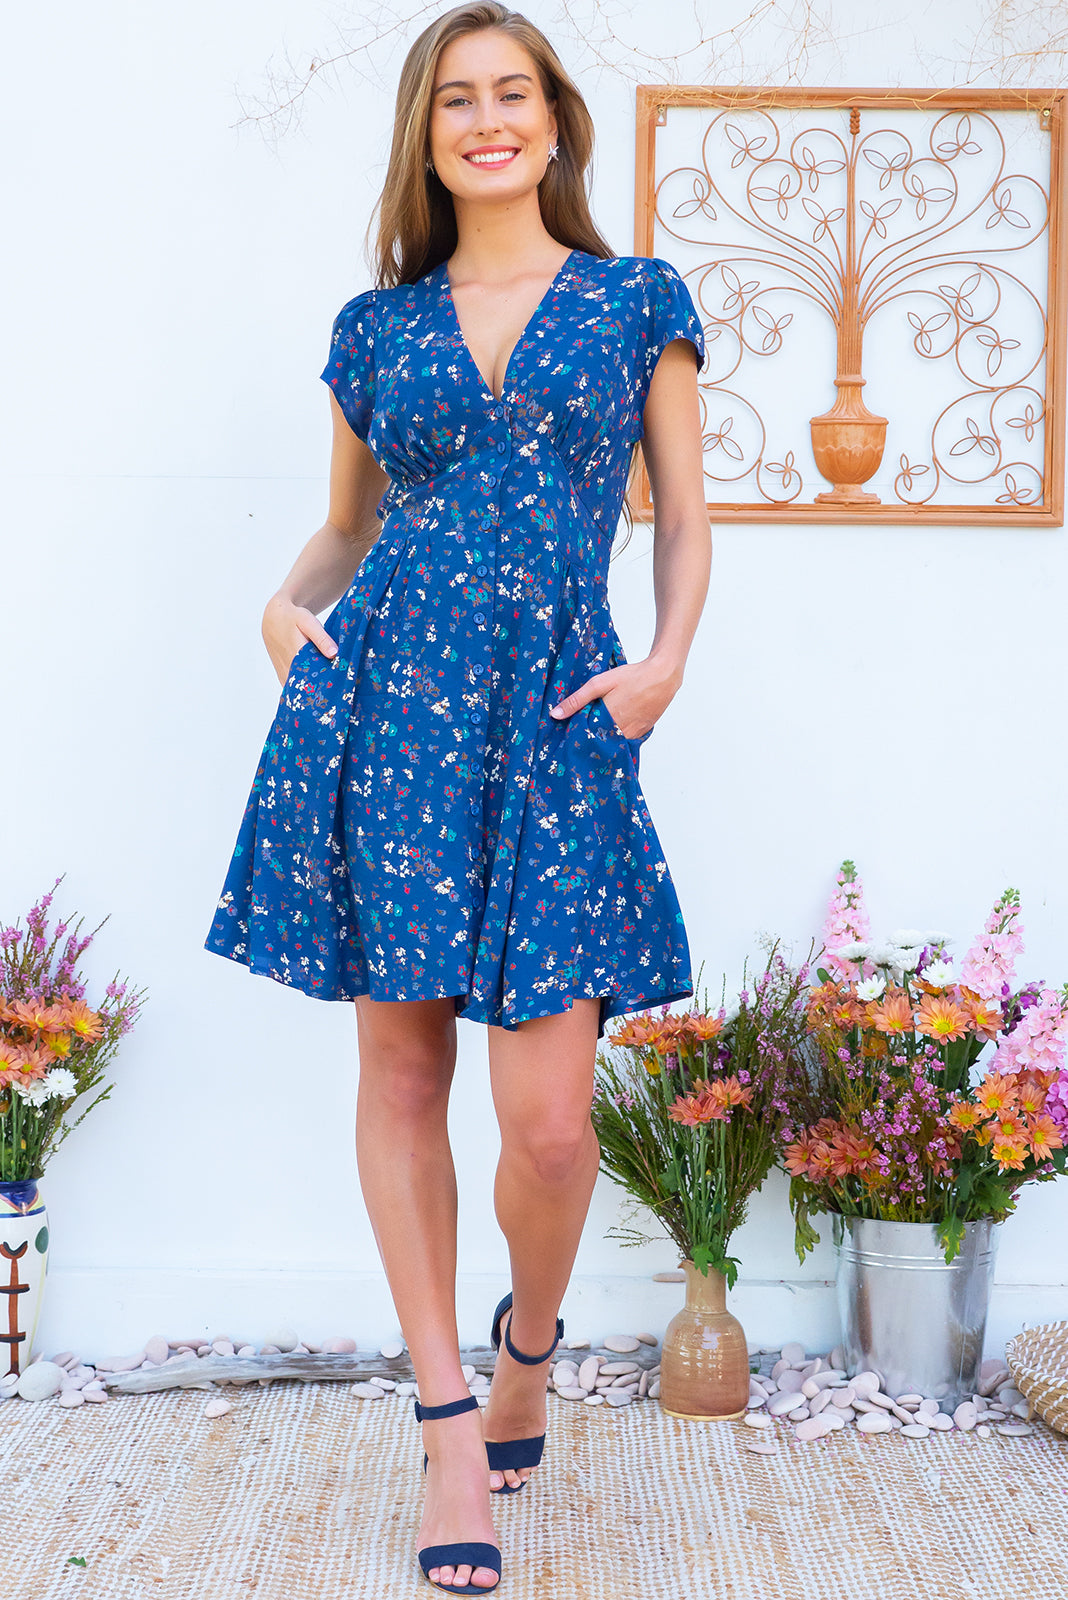 Peggy Venetians Blues Mini dress features a vintage inspired fitted basque waist and elasticated waist with a cap sleeve, deep v neck and a functional button front the fabric is a soft woven rayon in a pastel navy and floral print